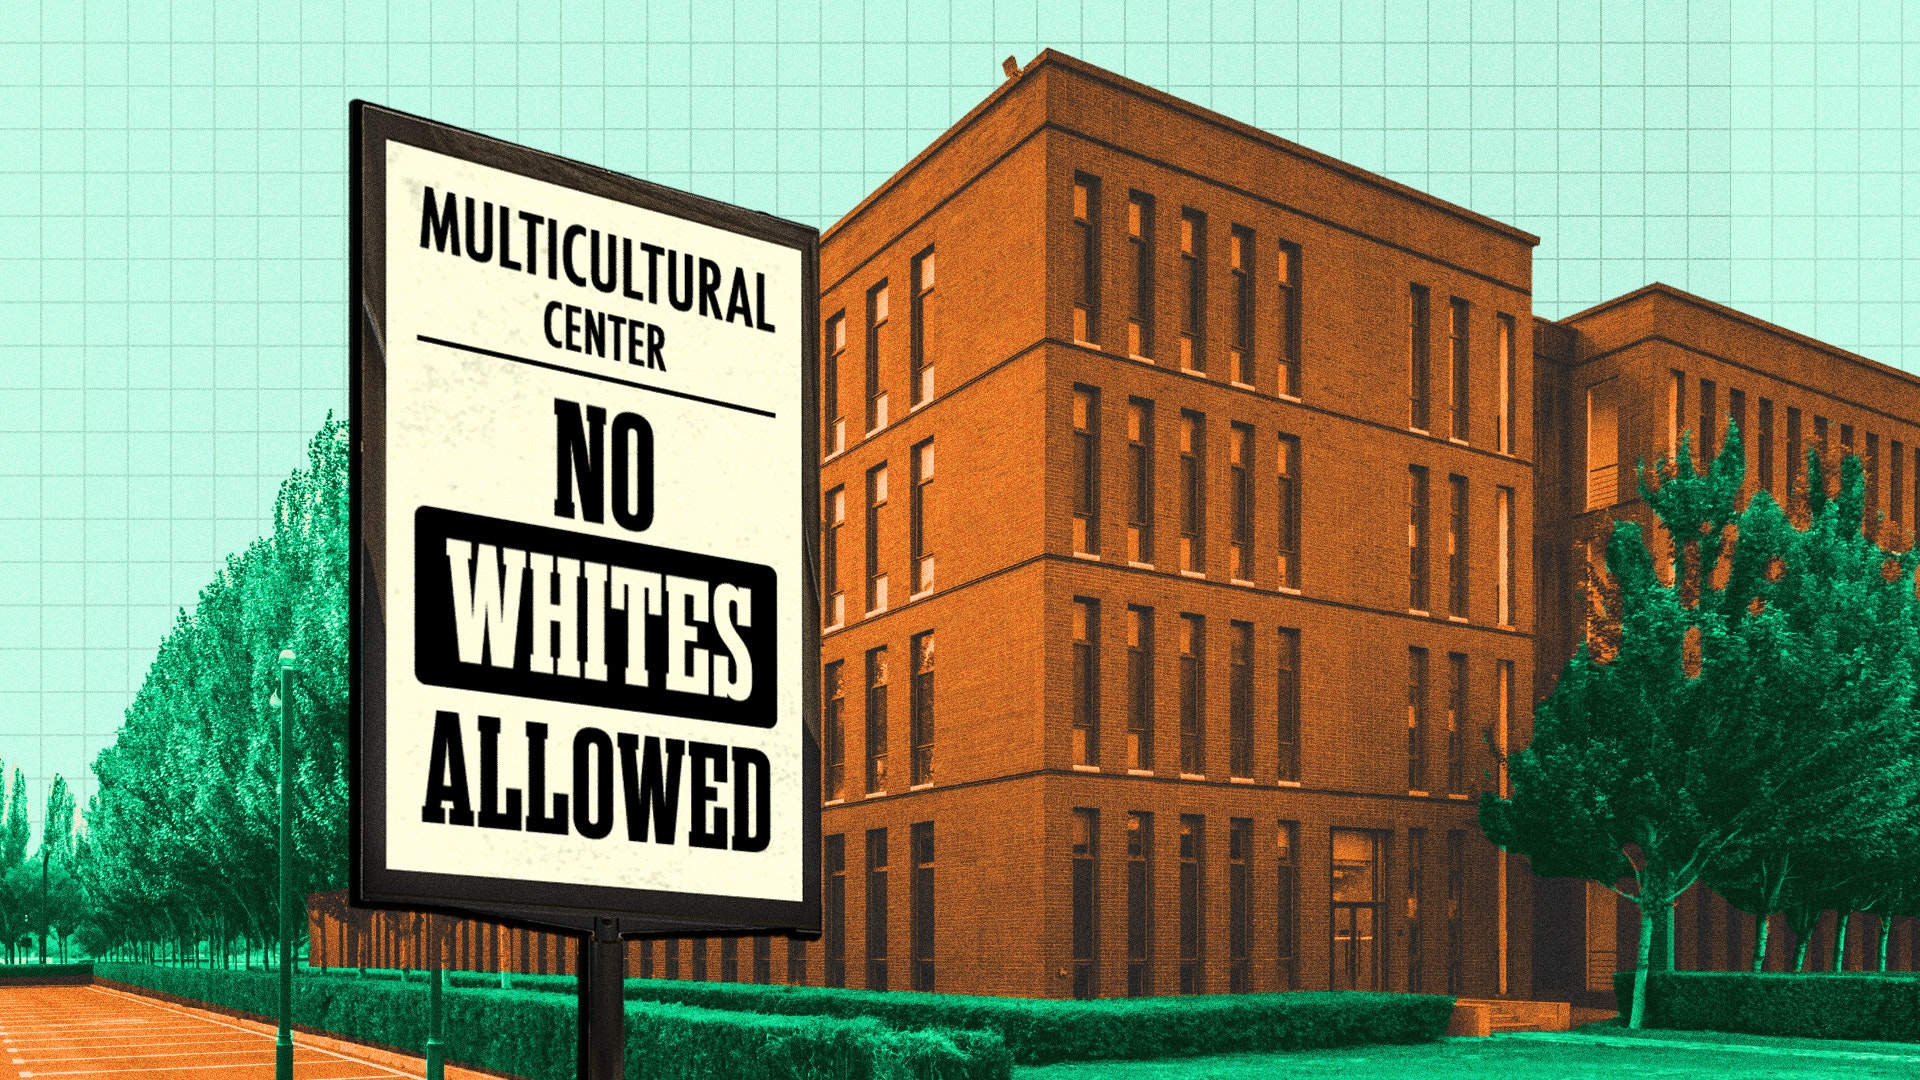 Ep. 804 - White Students Singled Out And Harassed In The Name Of Multiculturalism